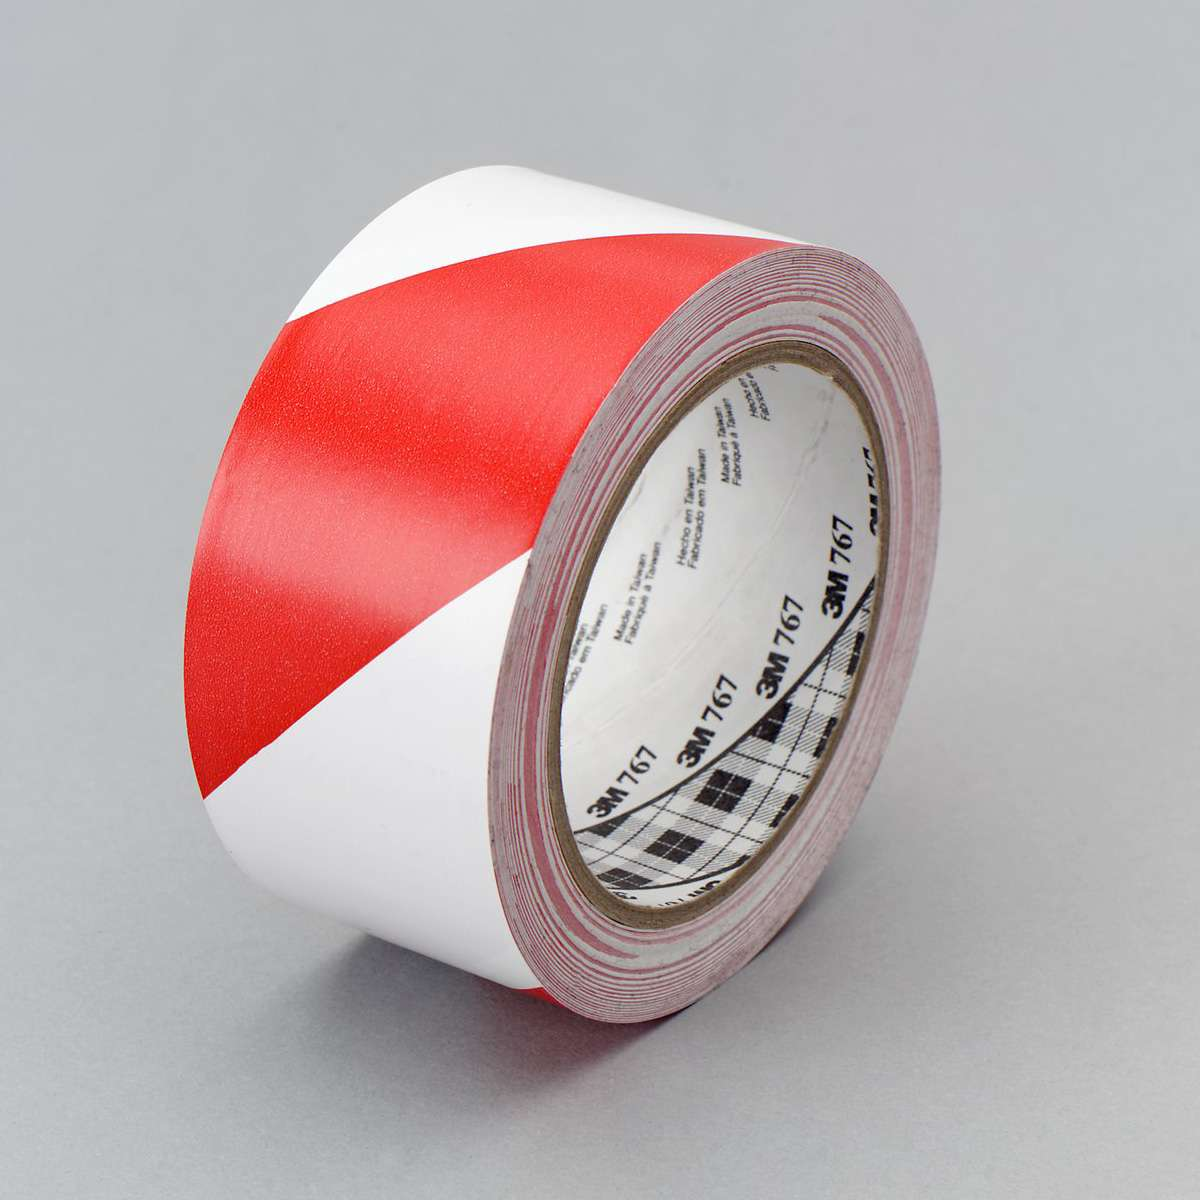 Marking tape 3M 767i, economy, 50mmx33m, red/white